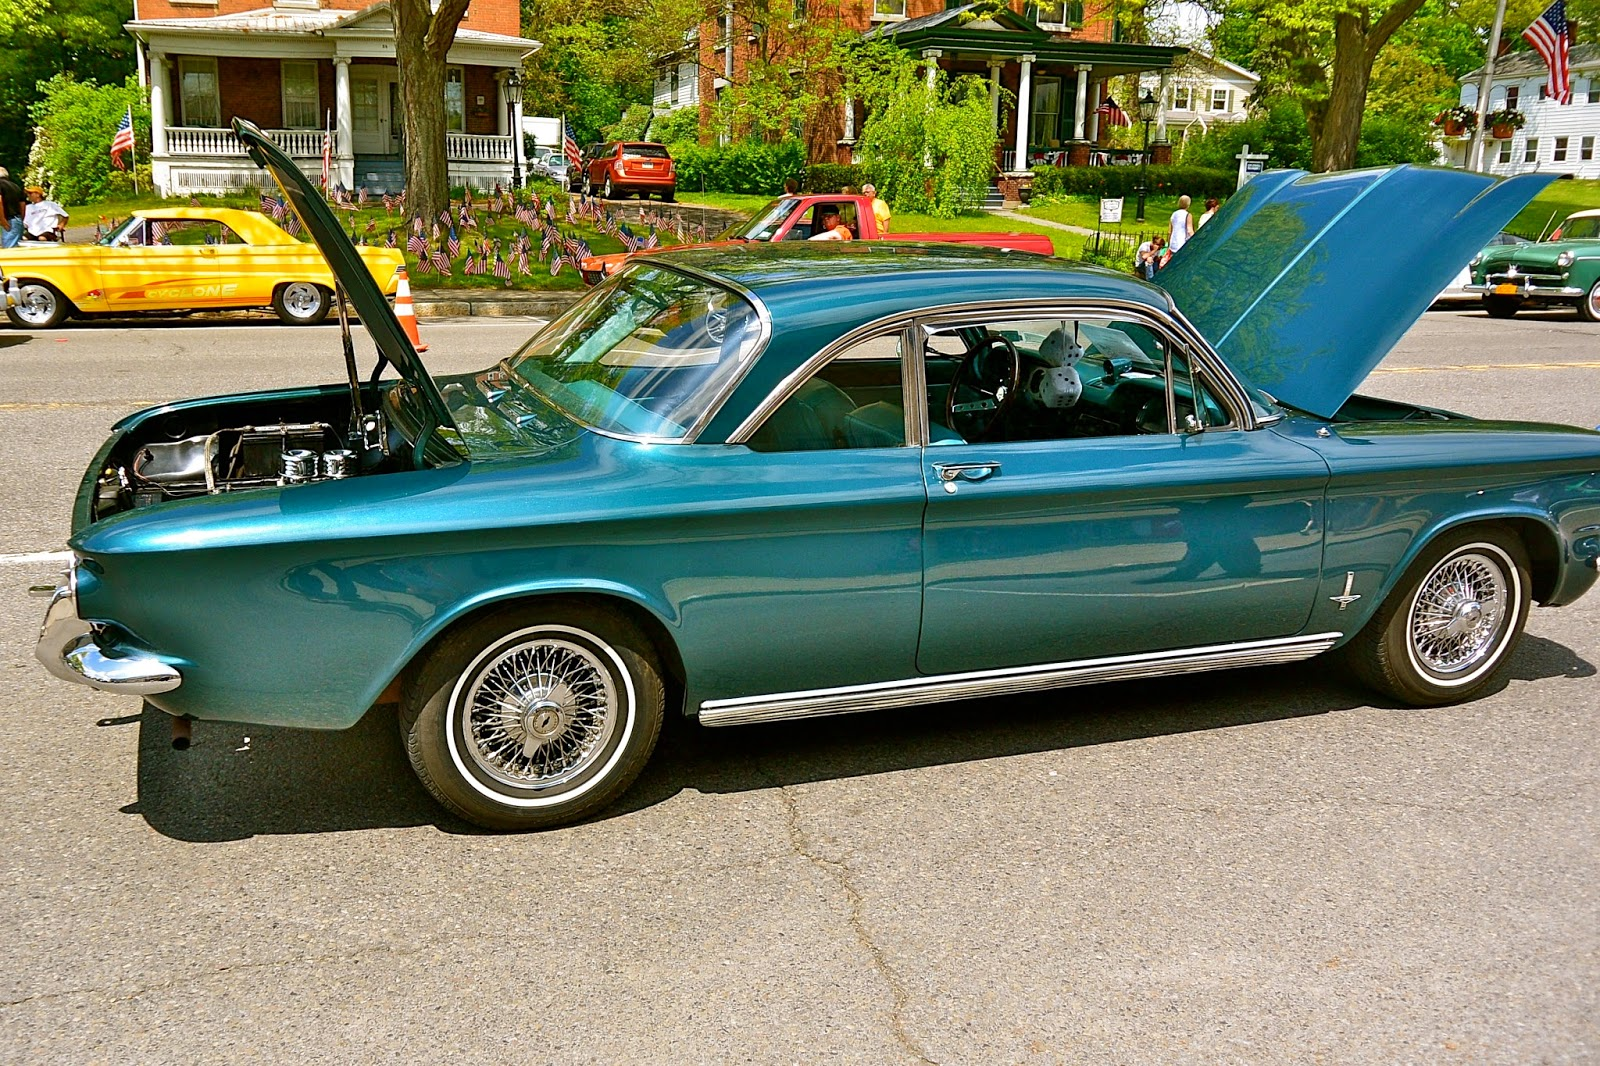 All Chevy chevy corvair monza : 63 Chevy Corvair Monza. | Tom The Backroads Traveller